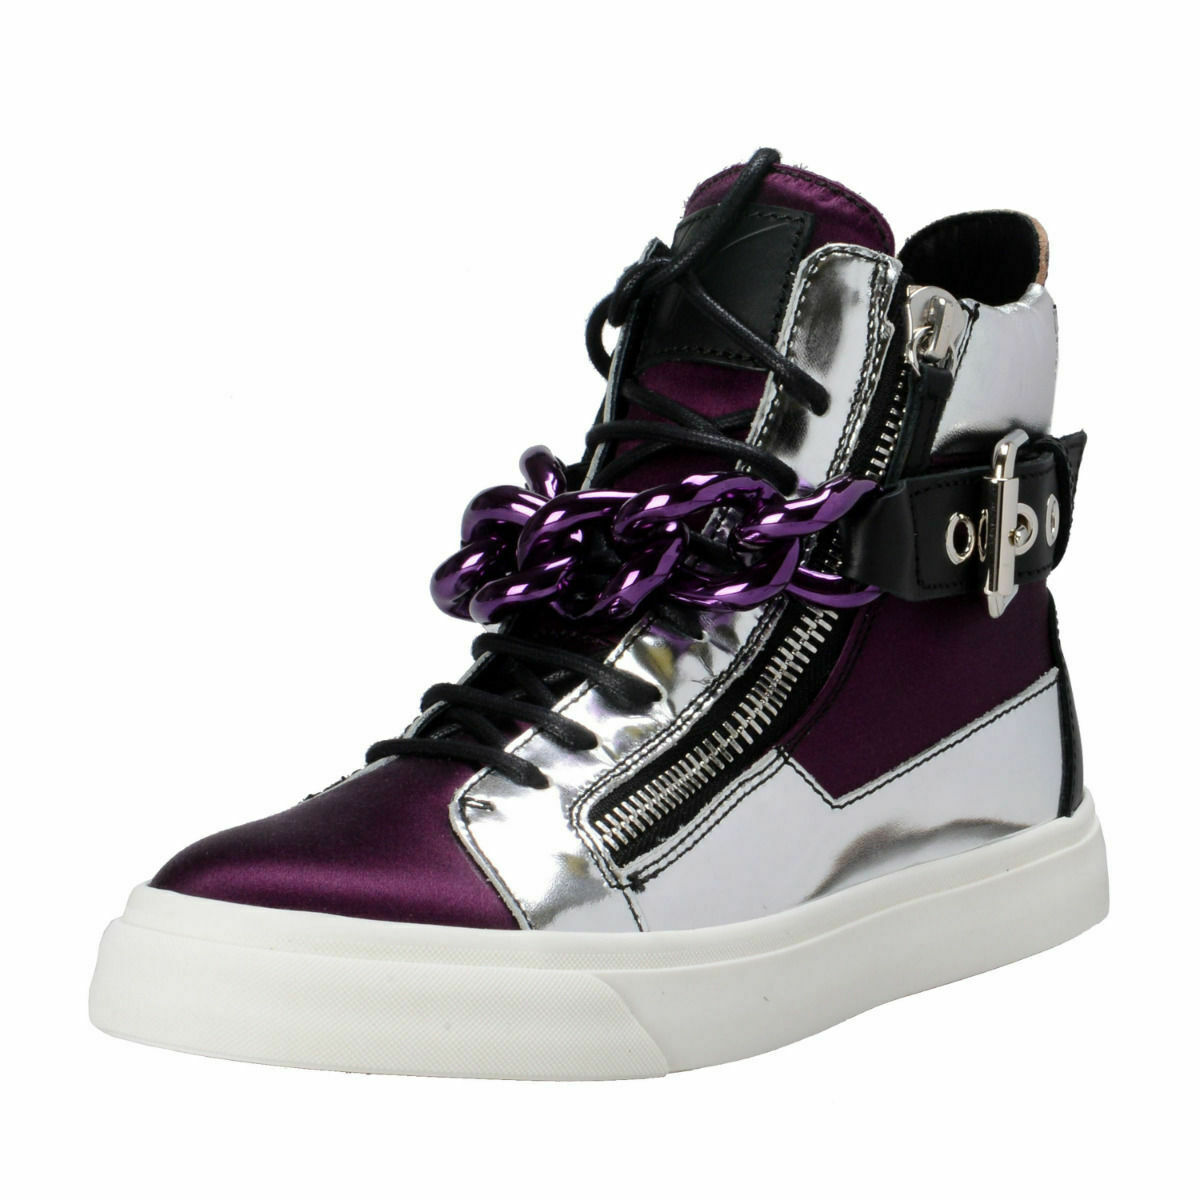 Giuseppe Zanotti Design Hi Top Fashion Sneakers shoes 6 8 8.5 9 9.5 10 10.5 11